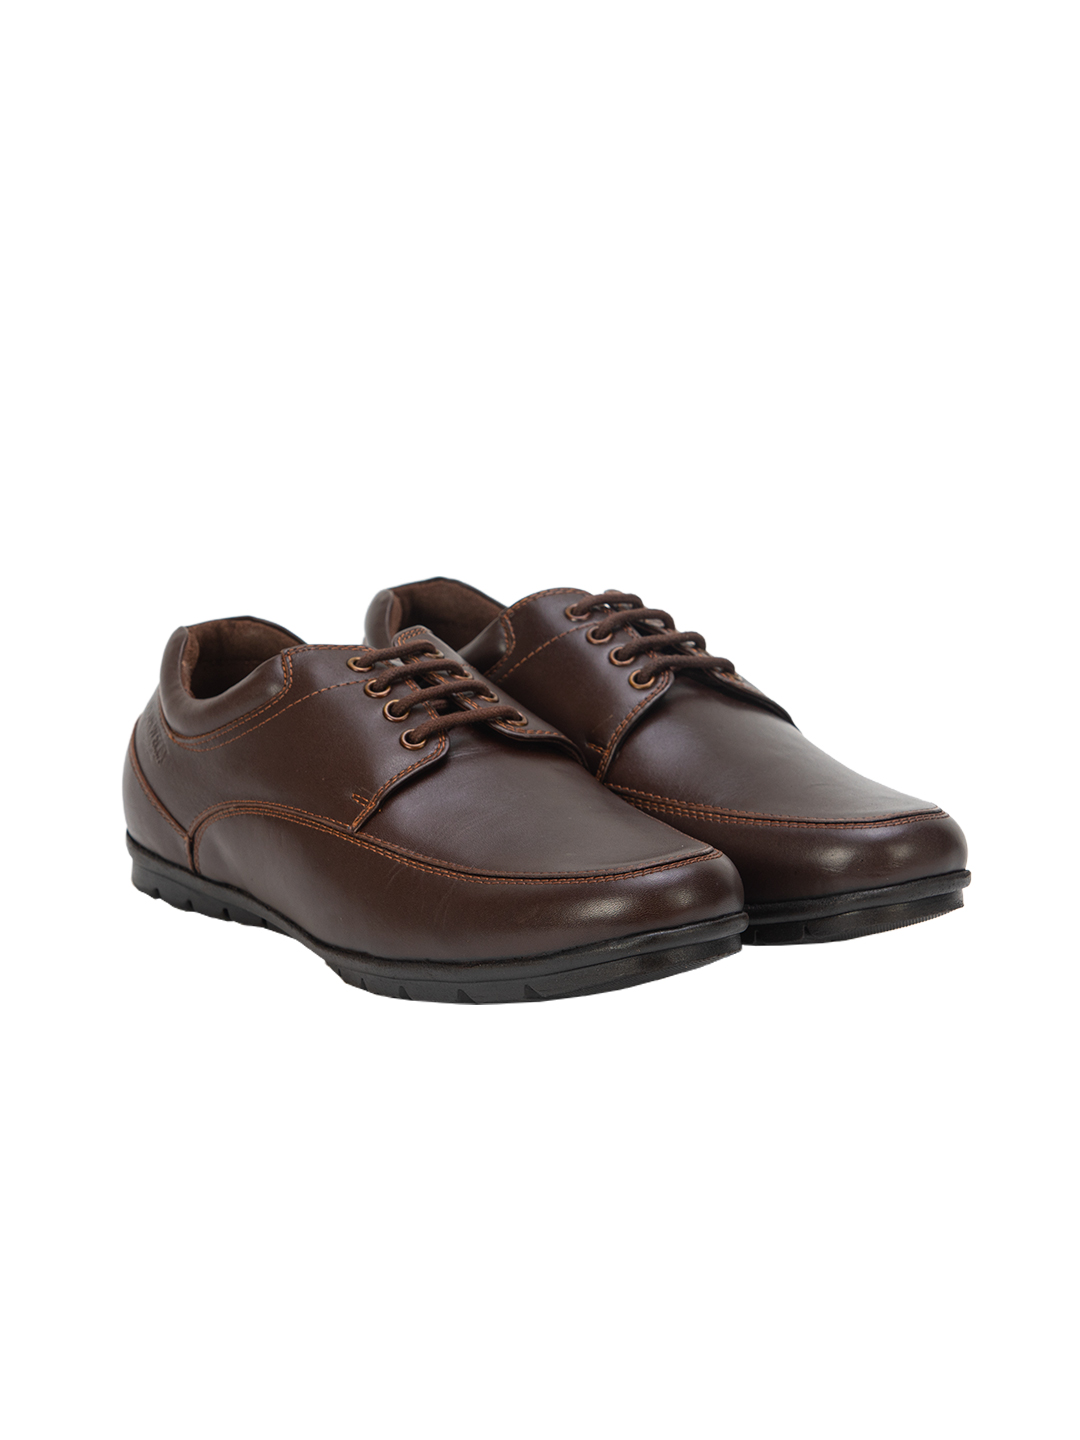 Buy Von Wellx Germany Comfort Coffee Brayden Shoes Online in Madhya Pradesh